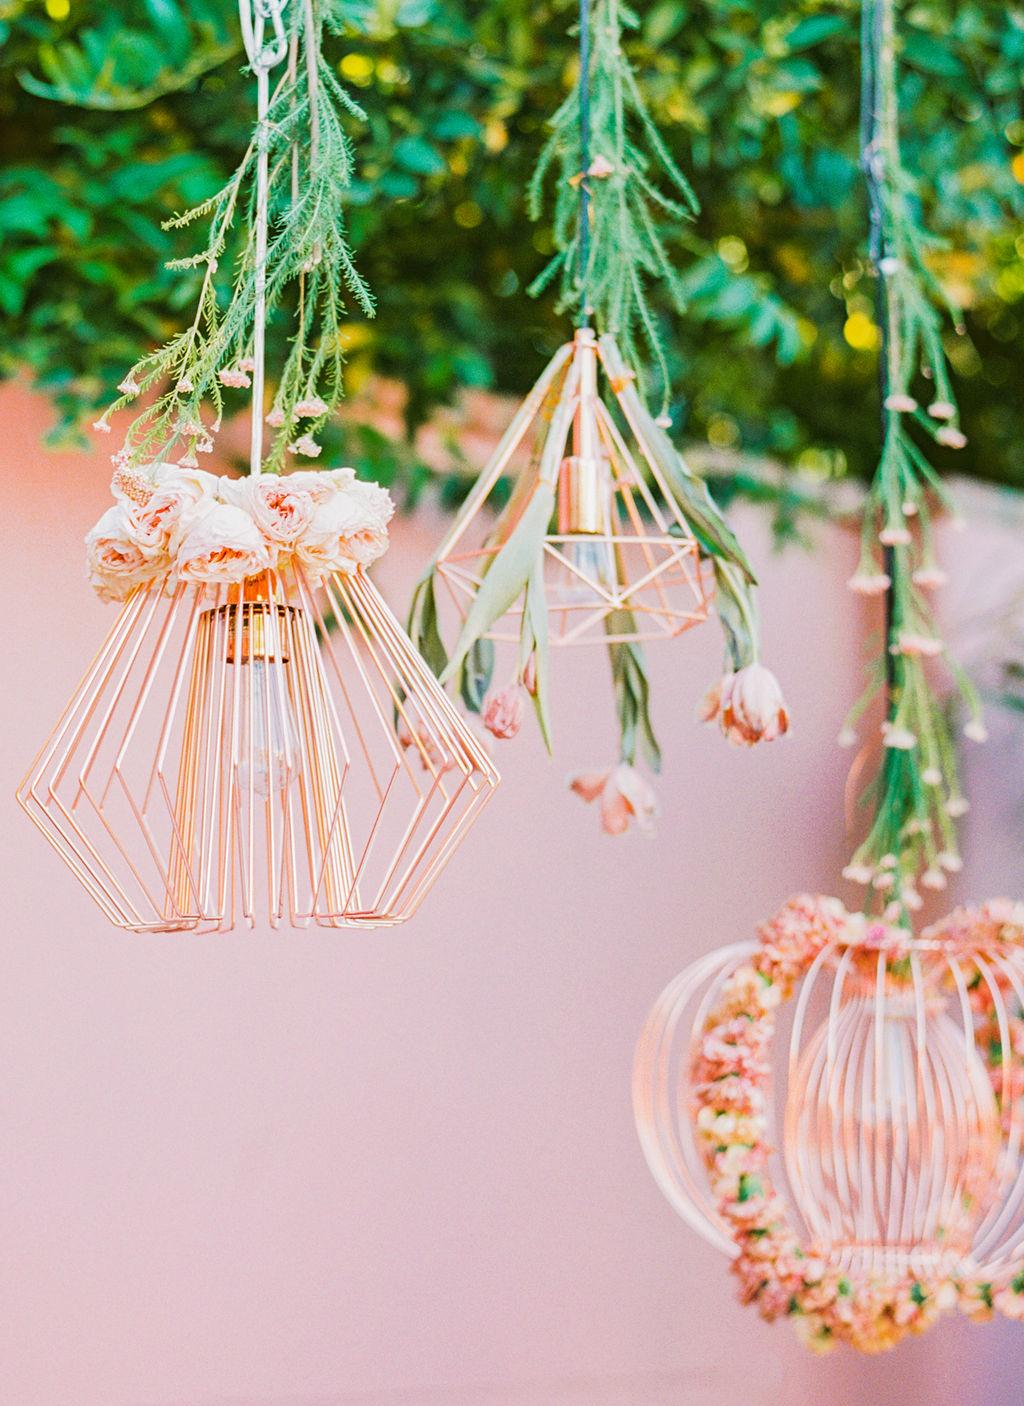 copper lanterns with hanging flowers https://shopstyle.it/l/bhiiK